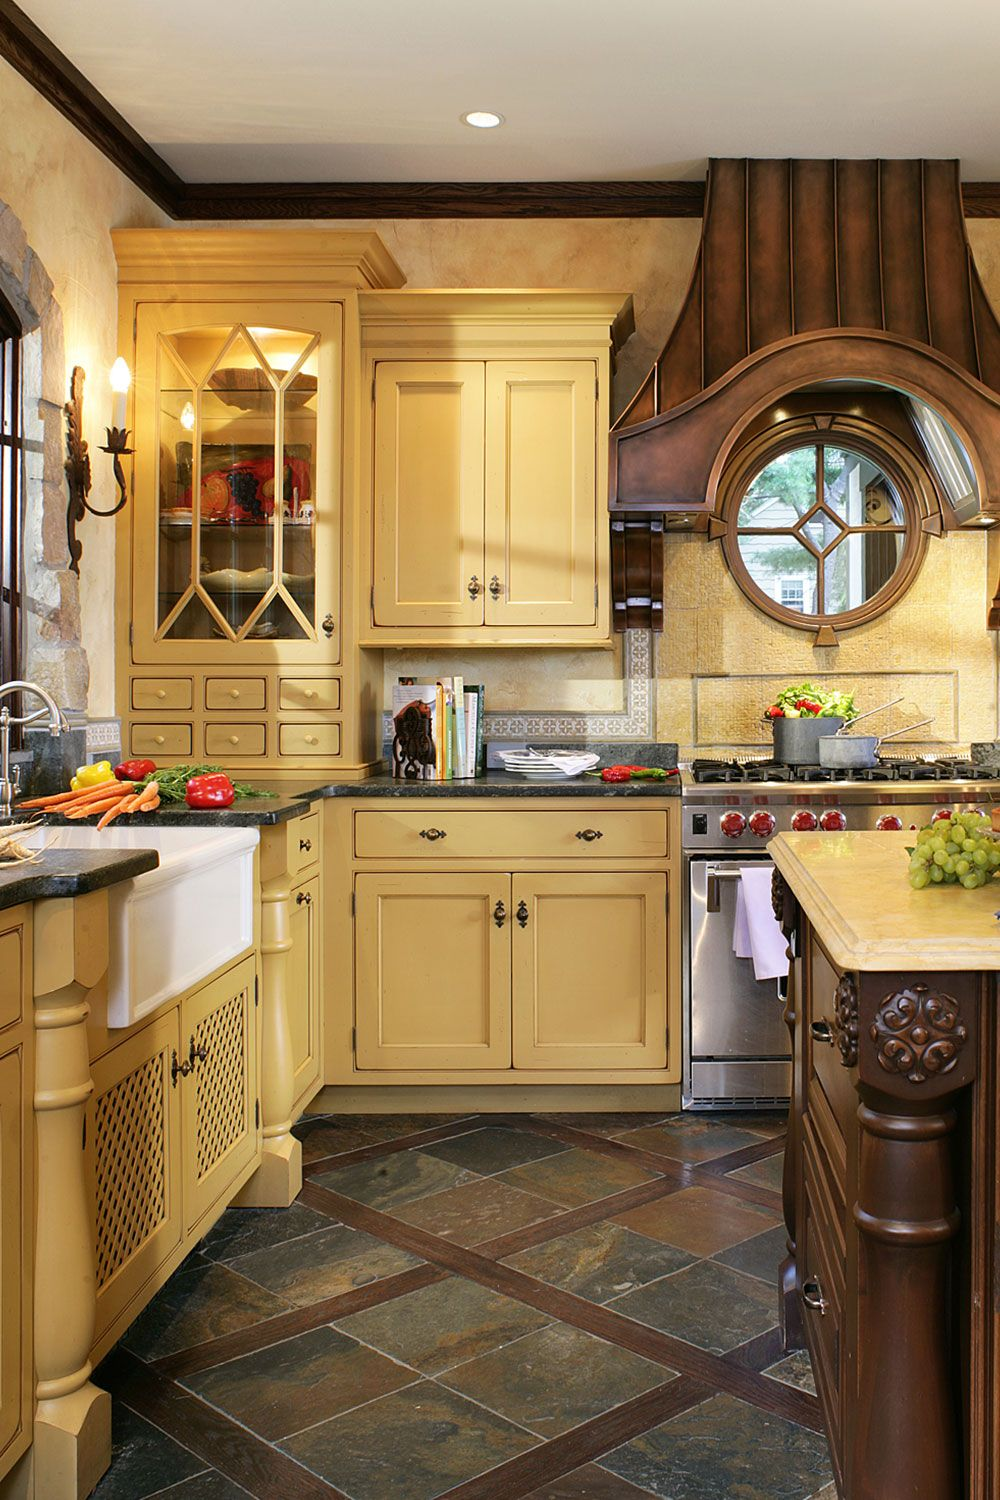 Mustard Color Paint For Kitchen 21 Yellow Kitchen Ideas Decorating Tips For Yellow Colored Kitchens